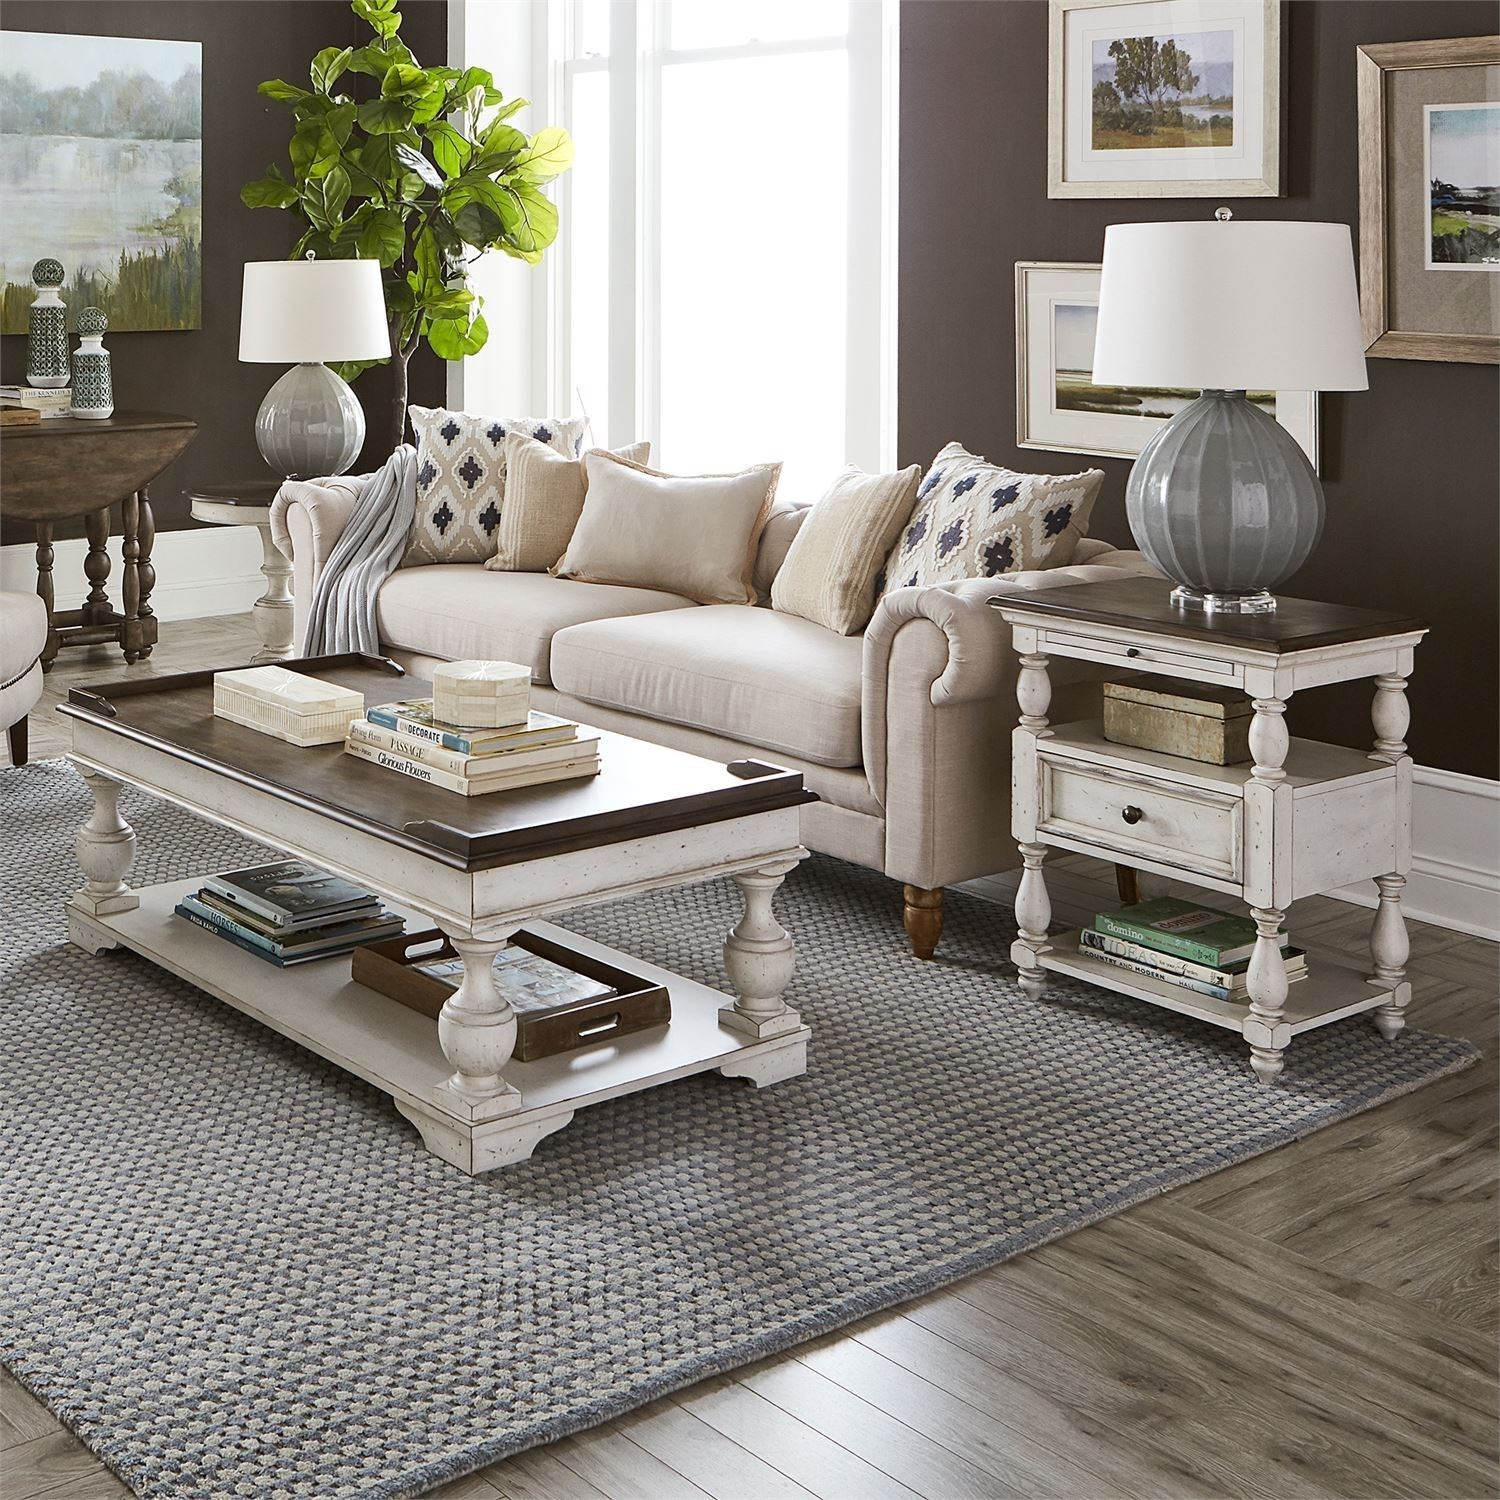 Abbey Road 3-Piece Set by Liberty Furniture at Home Collections Furniture